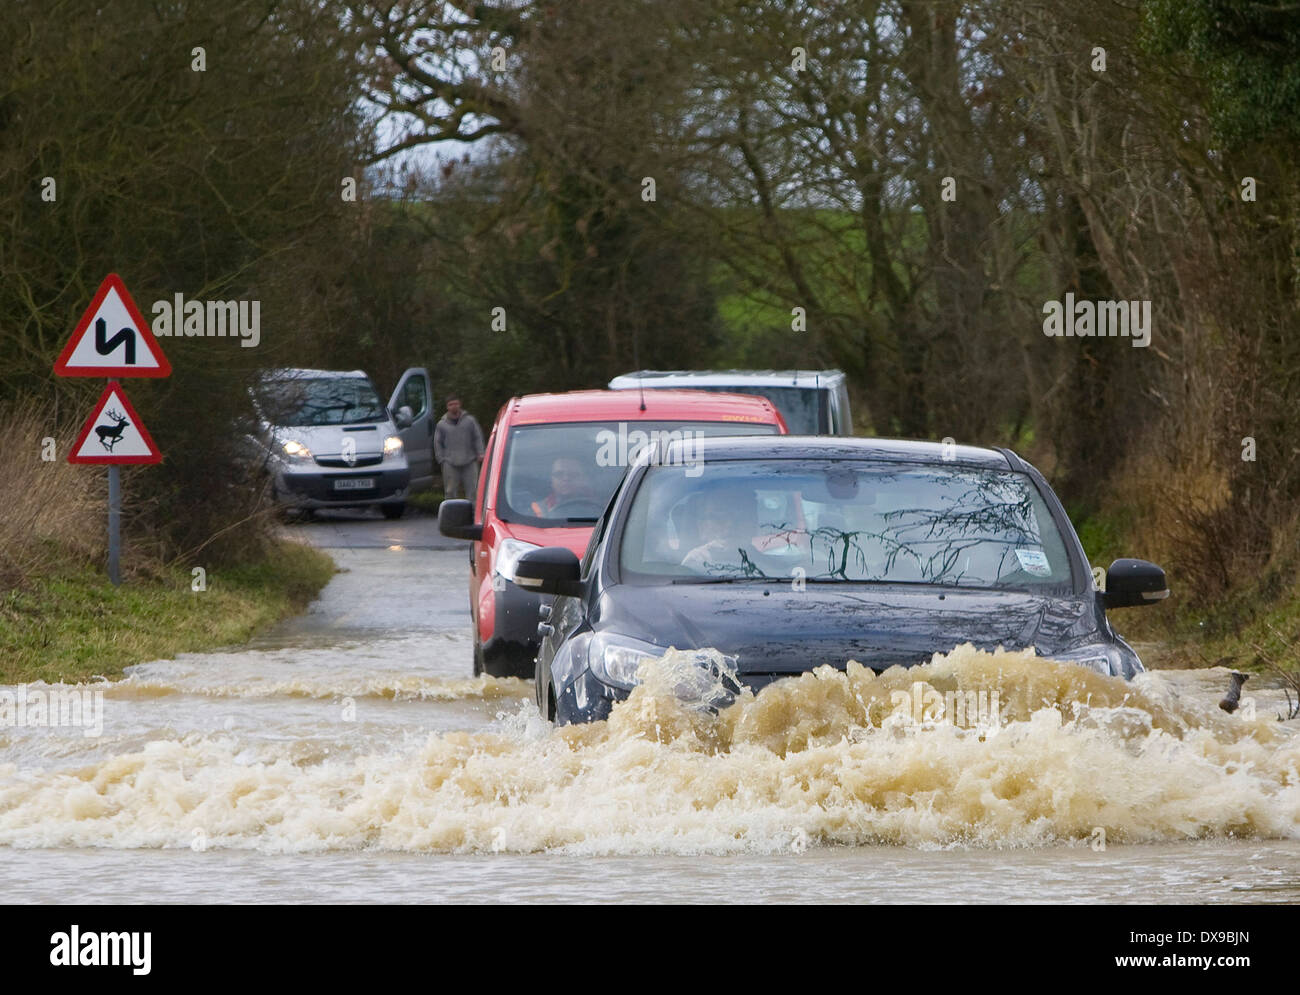 Cars struggle through Floods water in Steeple Bumpstead Essex today after heavy overnight rain 07/02/2014 Pic George Impey - Stock Image